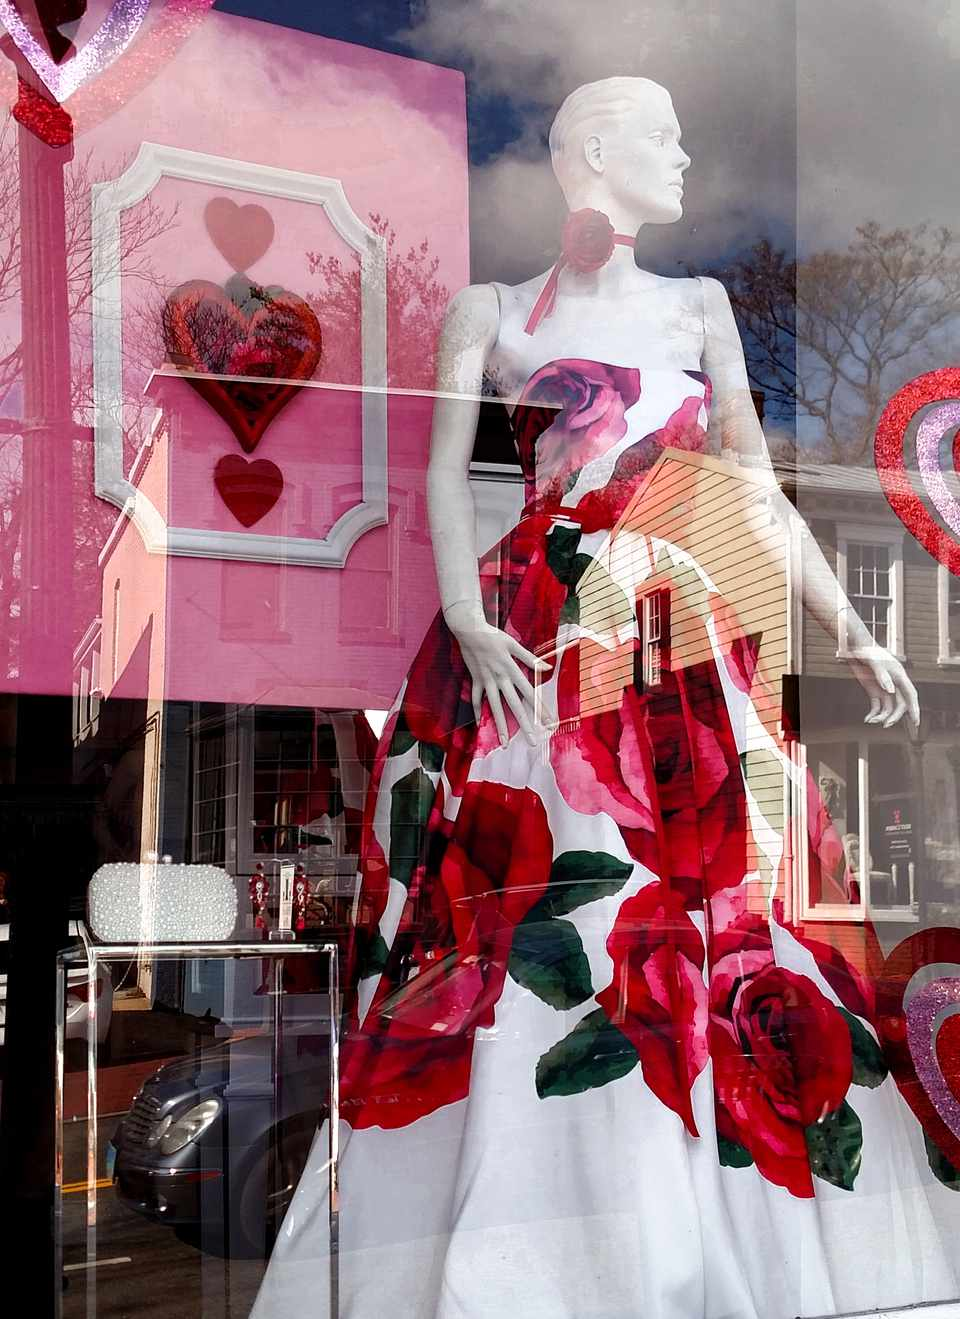 Storefront decorated for Valentine's Day in Washington DC